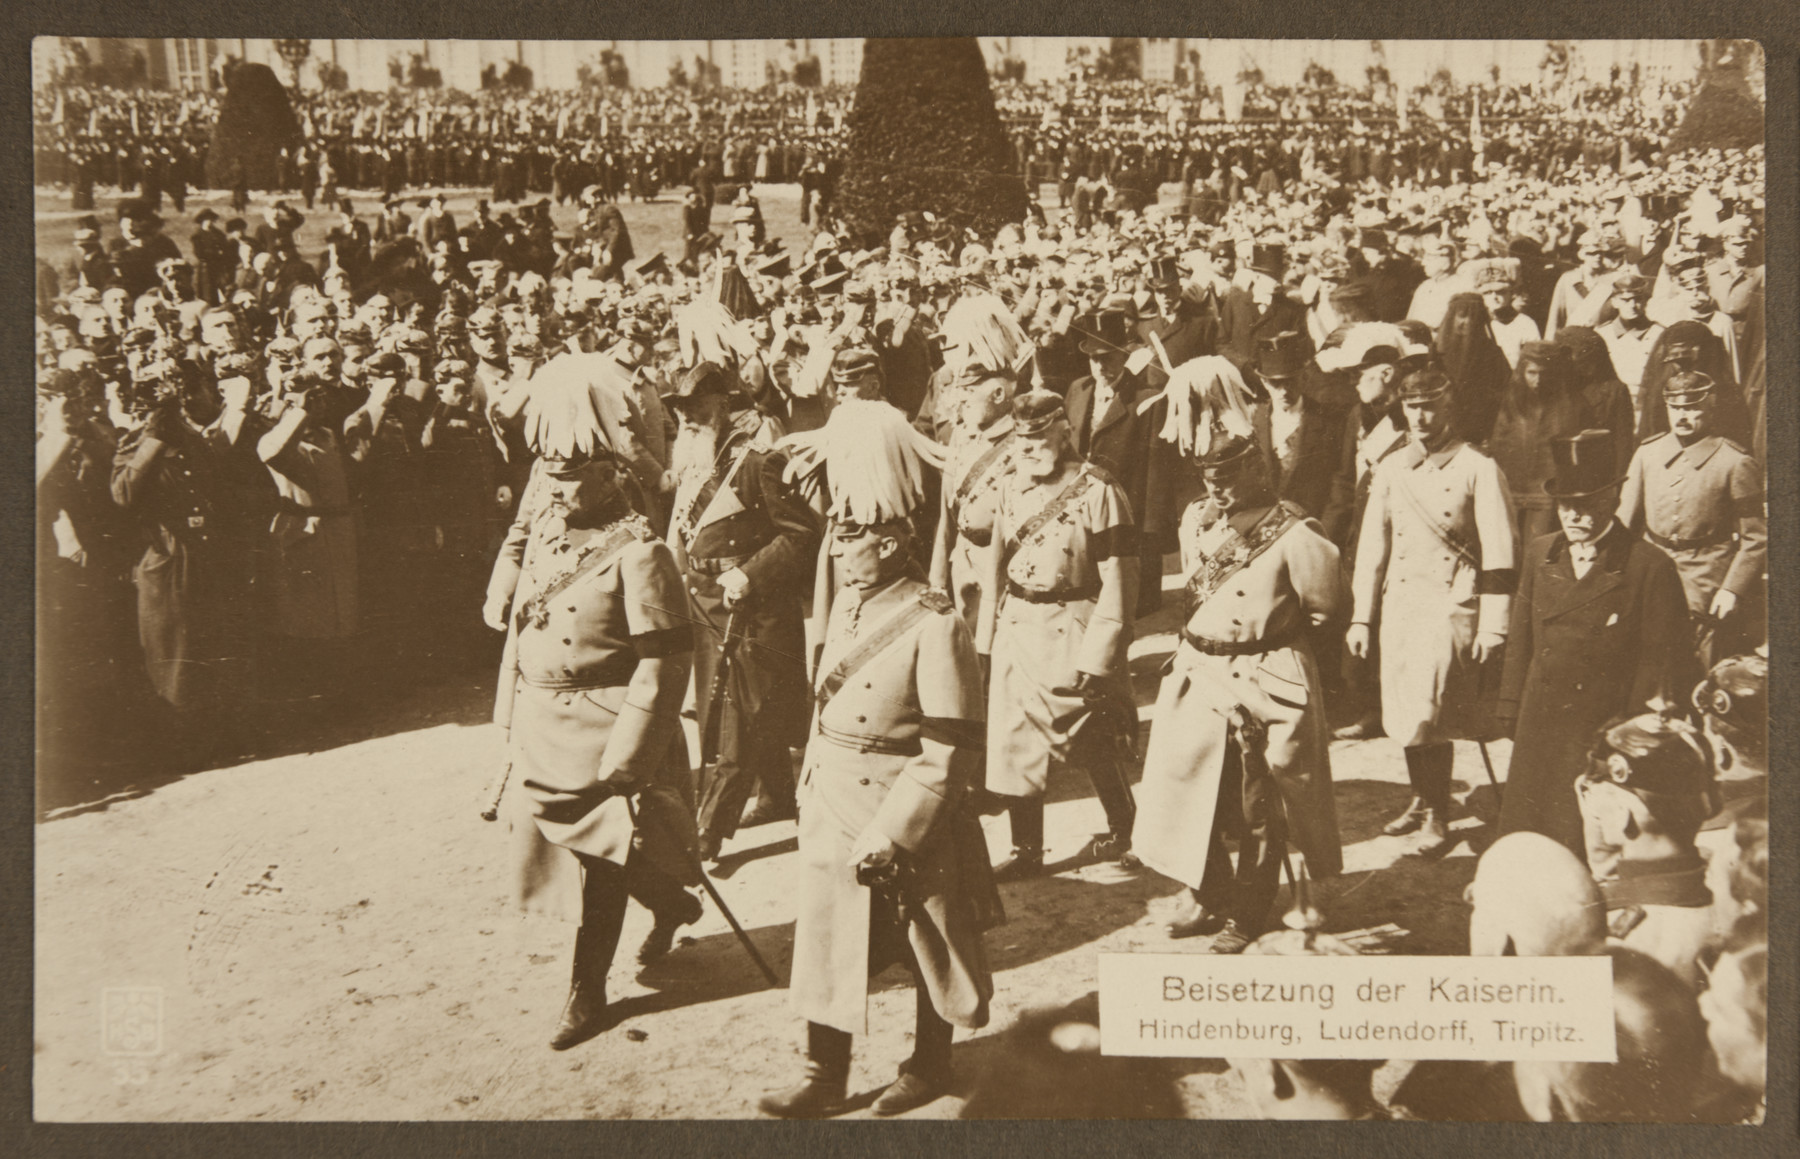 Generals Paul von Hindenburg and Erich Ludendorff, and Admiral Alfred von Tirpitz, march in the funeral procession of Augusta Victoria of Schleswig-Holstein, wife of Kaiser Wilhelm II.